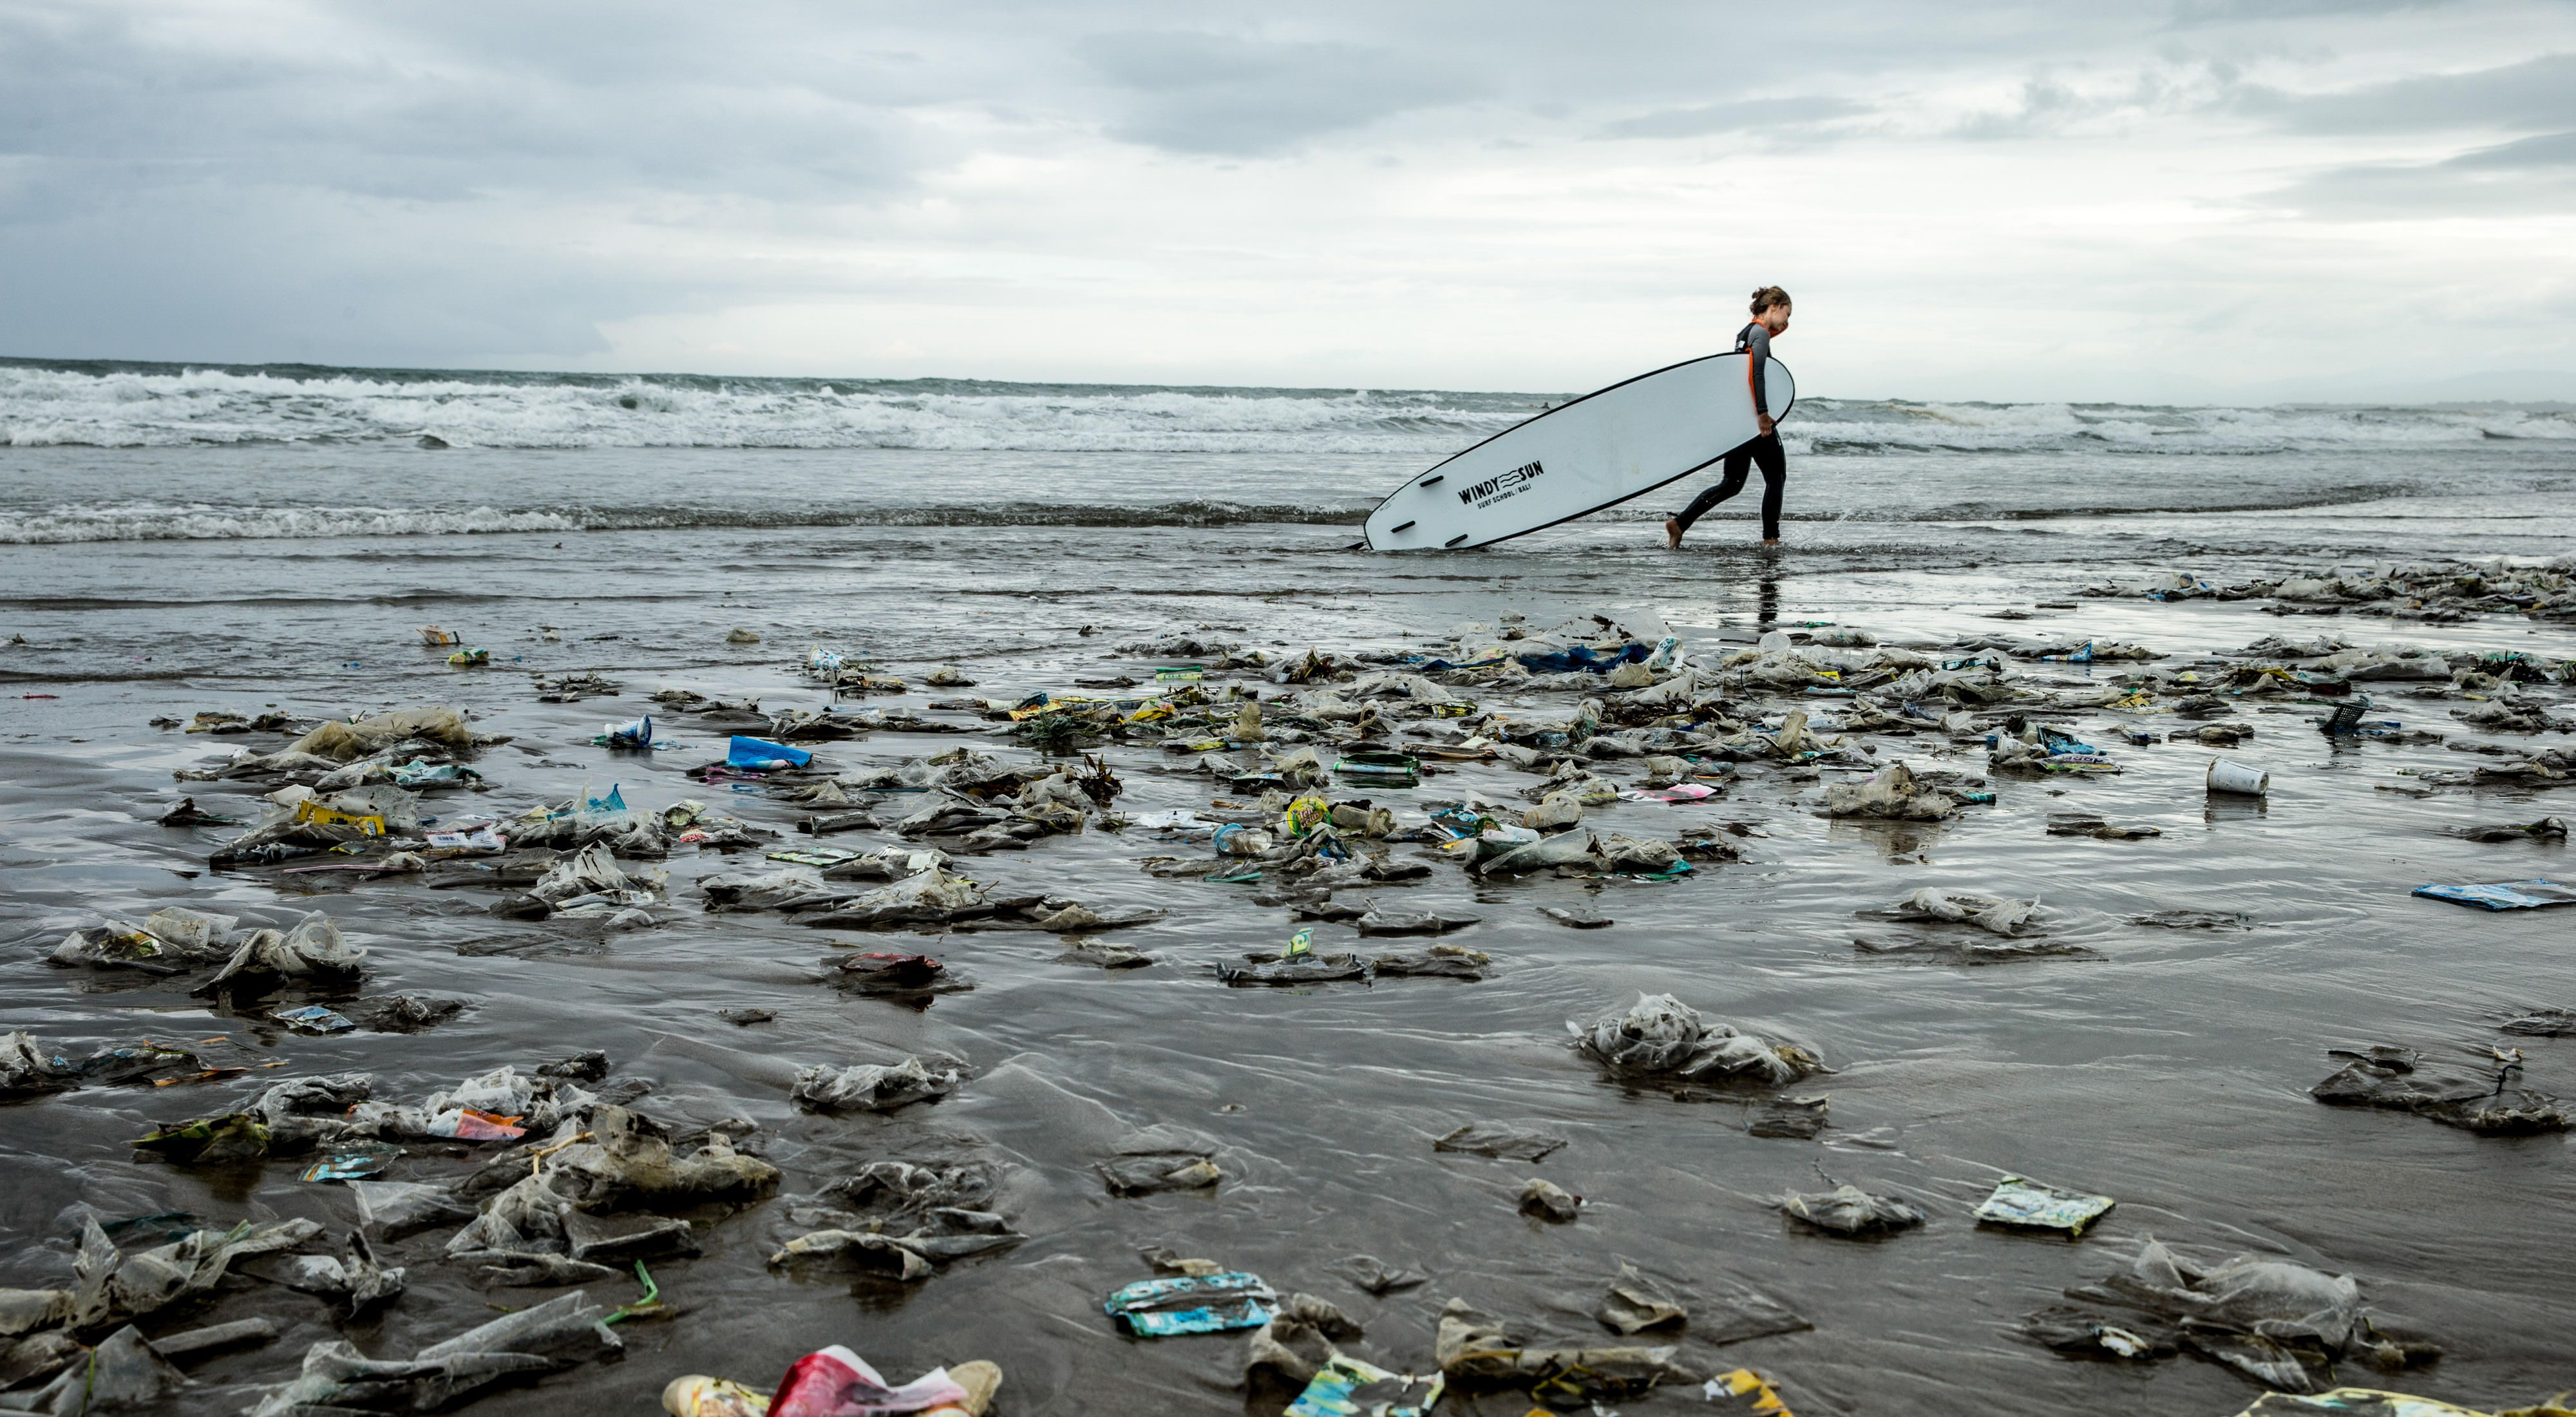 A surfer walks on Kuta Beach, Bali, Indonesia during the monsoon season, when onshore winds bring large amounts of trash to the shores of Bali's west coast.